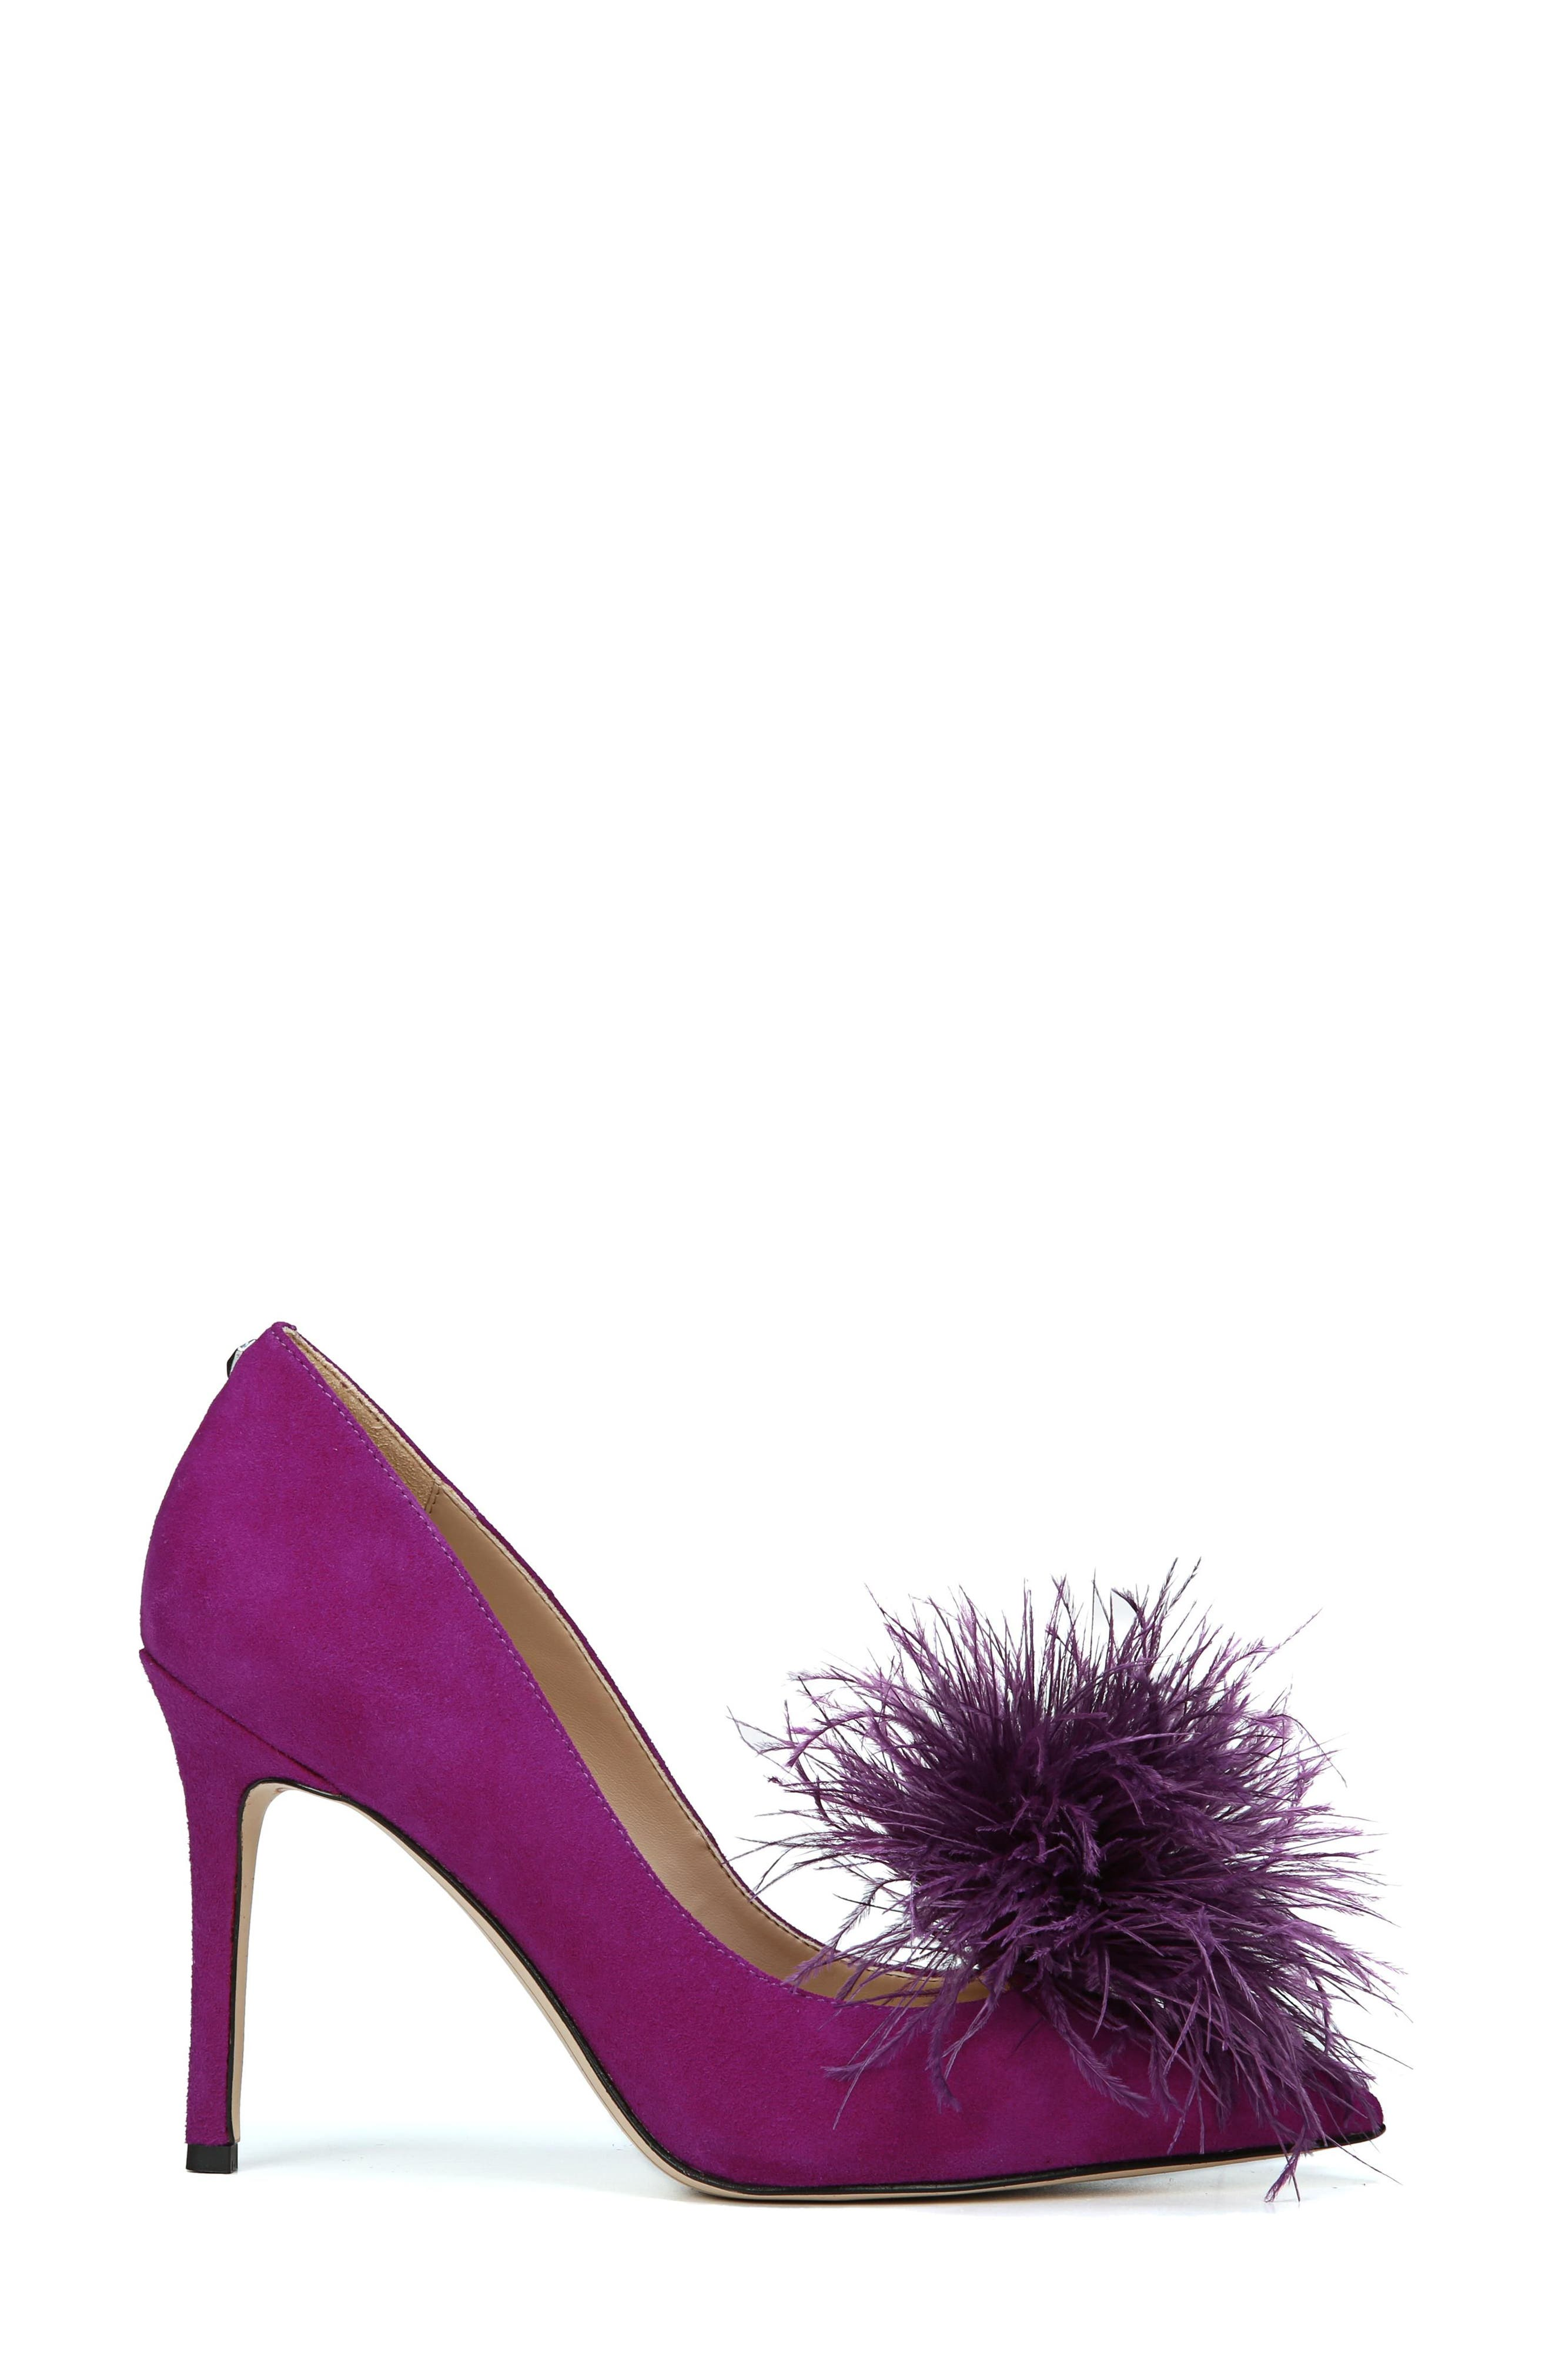 Haide Feather Pompom Pump,                             Alternate thumbnail 3, color,                             Laser Purple Leather